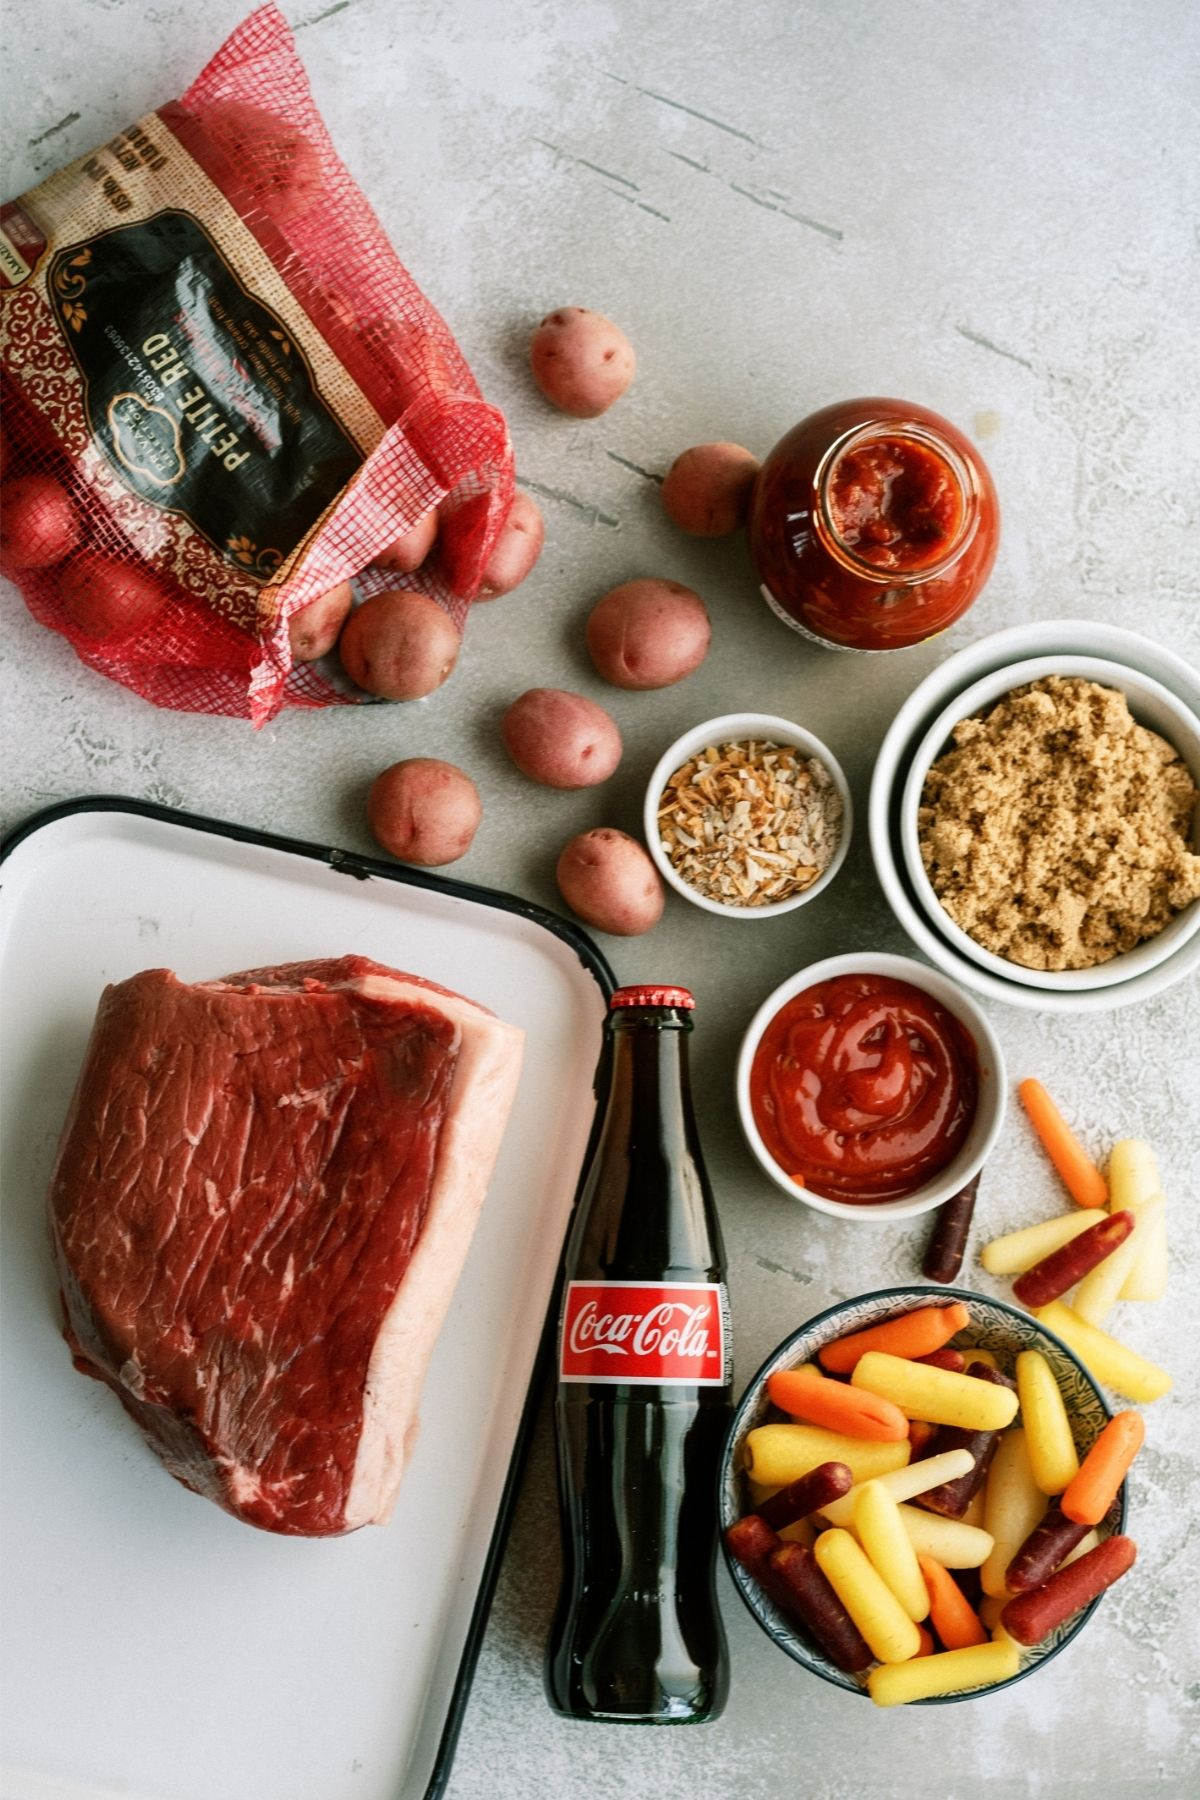 Ingredients for Melt In Your Mouth Slow Cooker Pot Roast